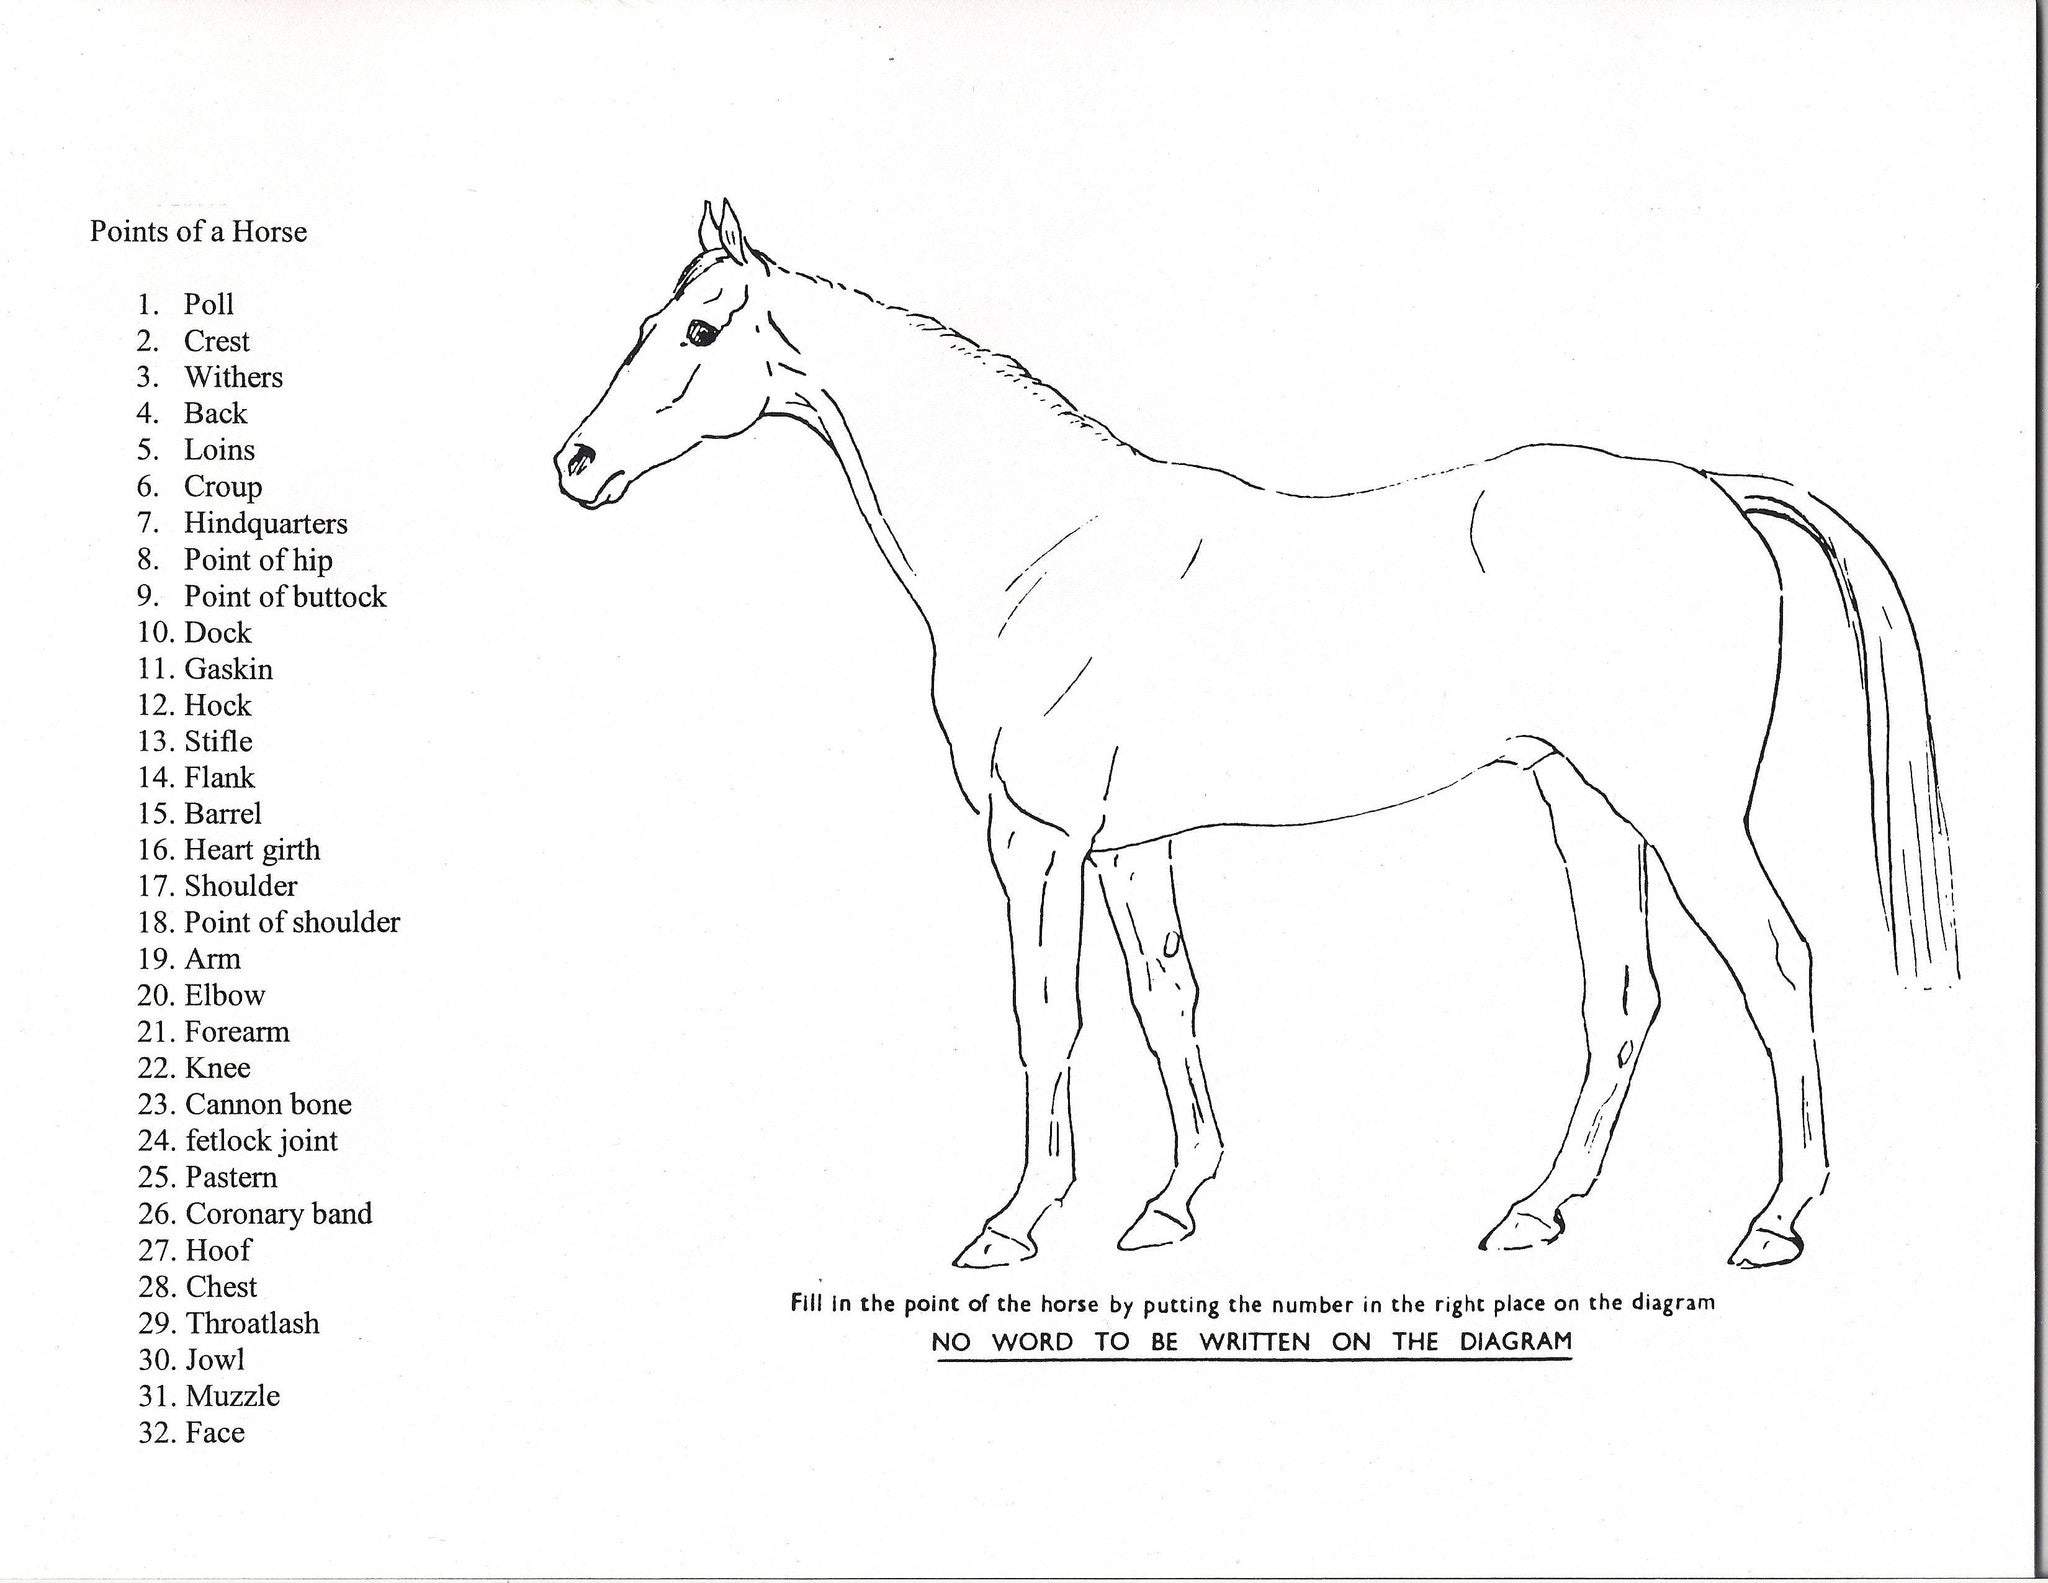 Points of the Horse Game – Shop Pony Club